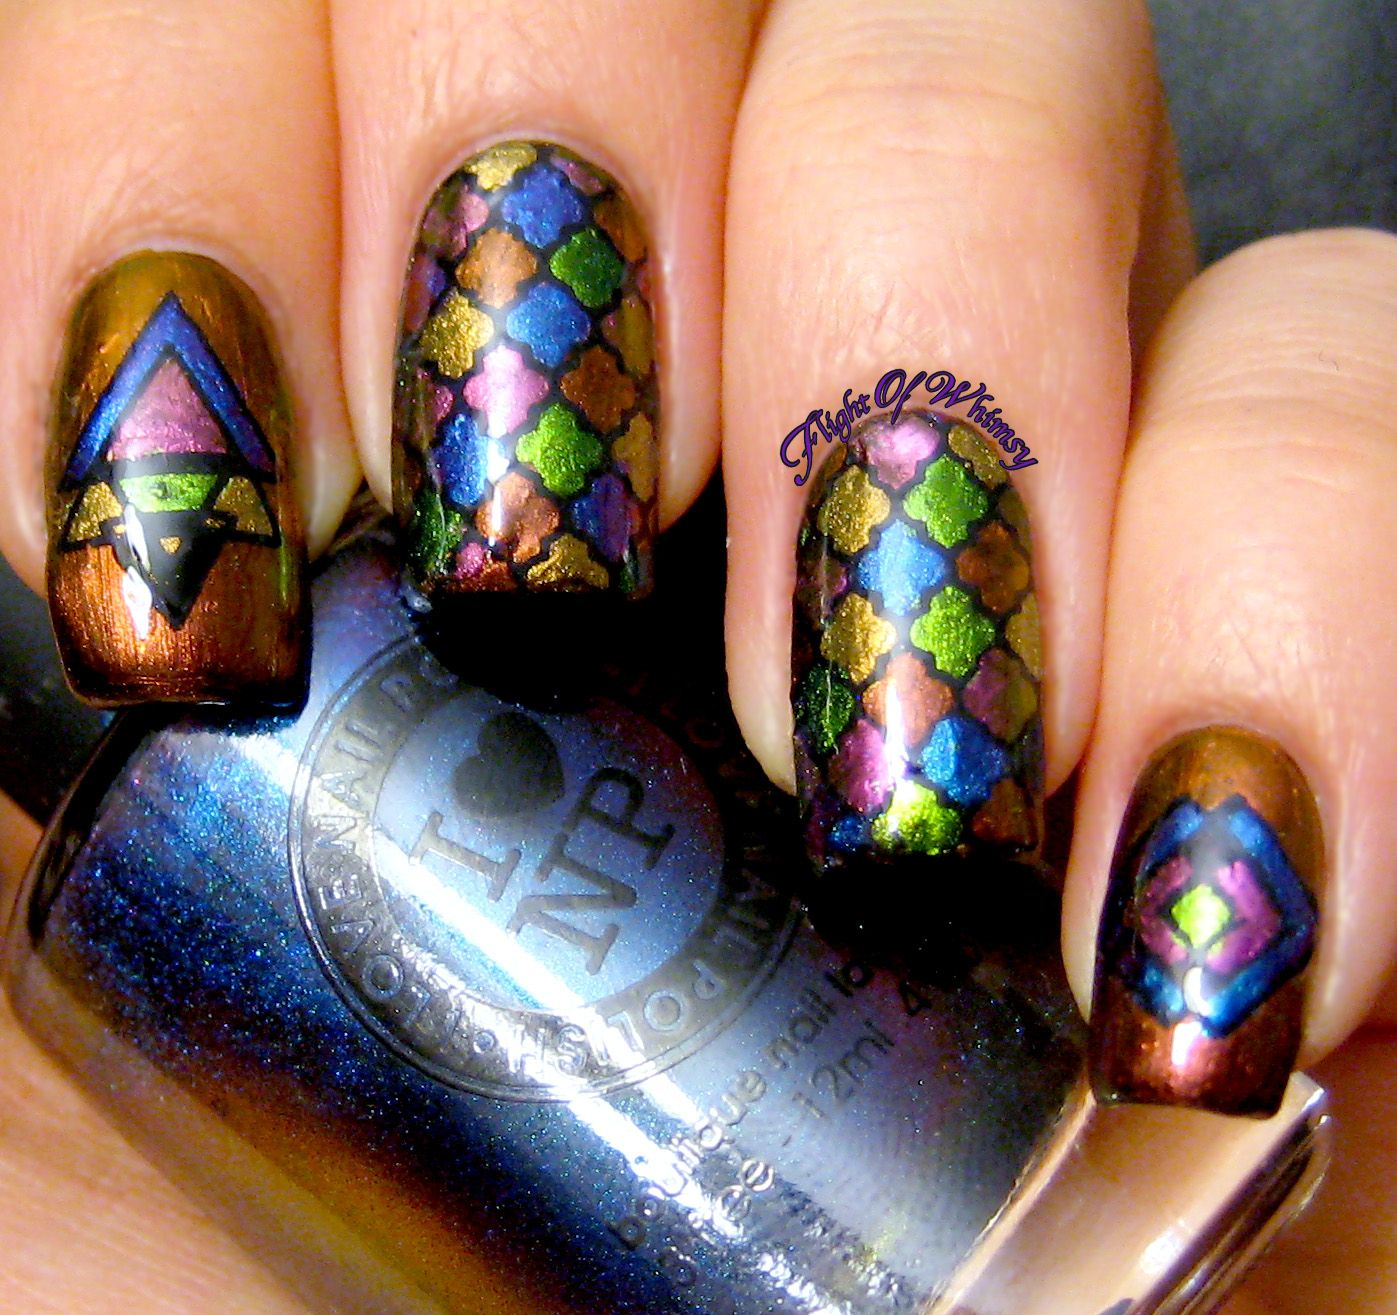 Stained Glass Nail Art: Nail Art Community Pins